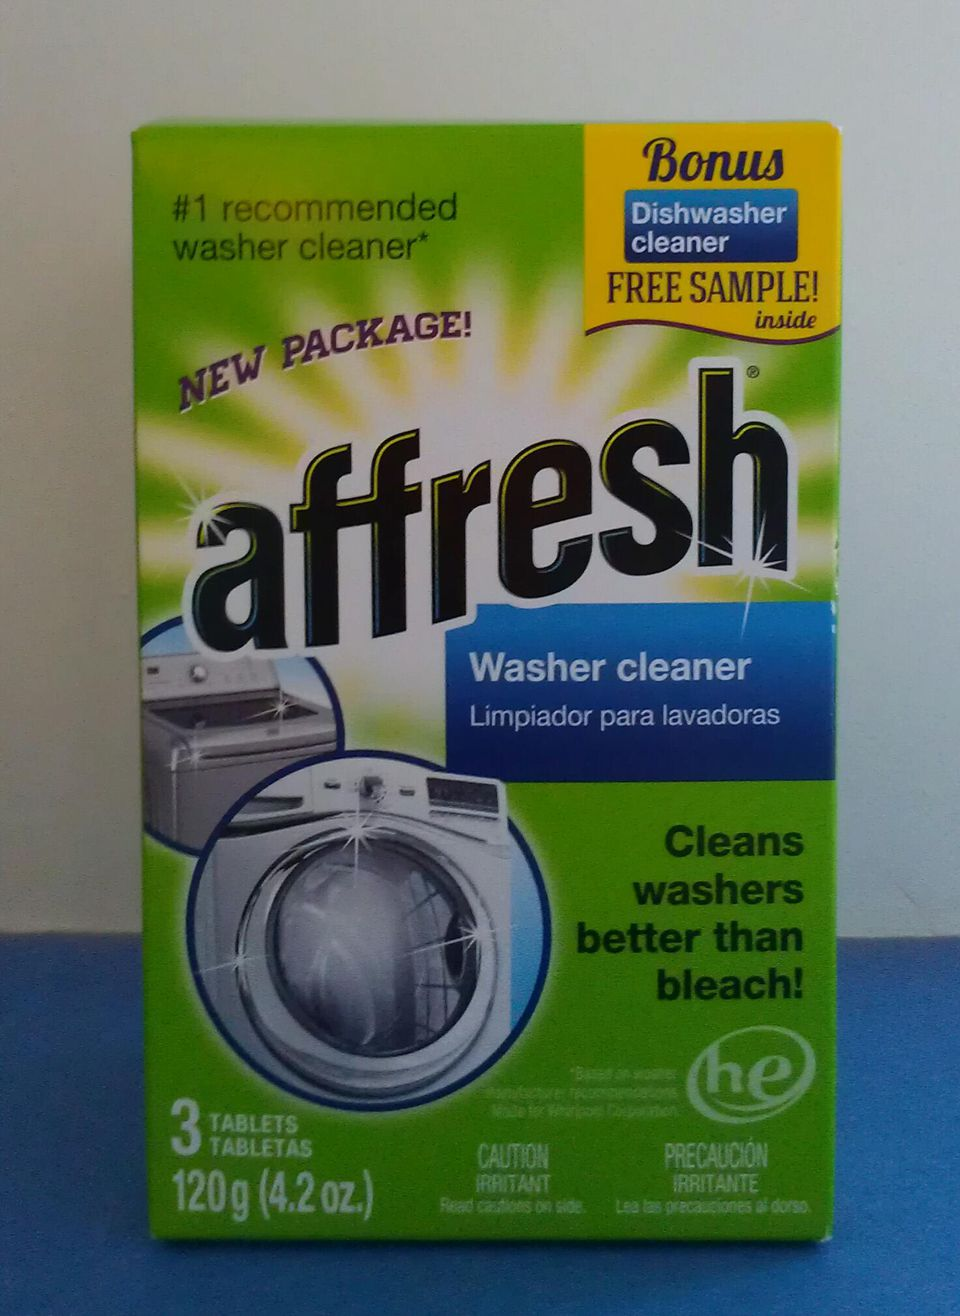 Box of Affresh Washer Cleaner.